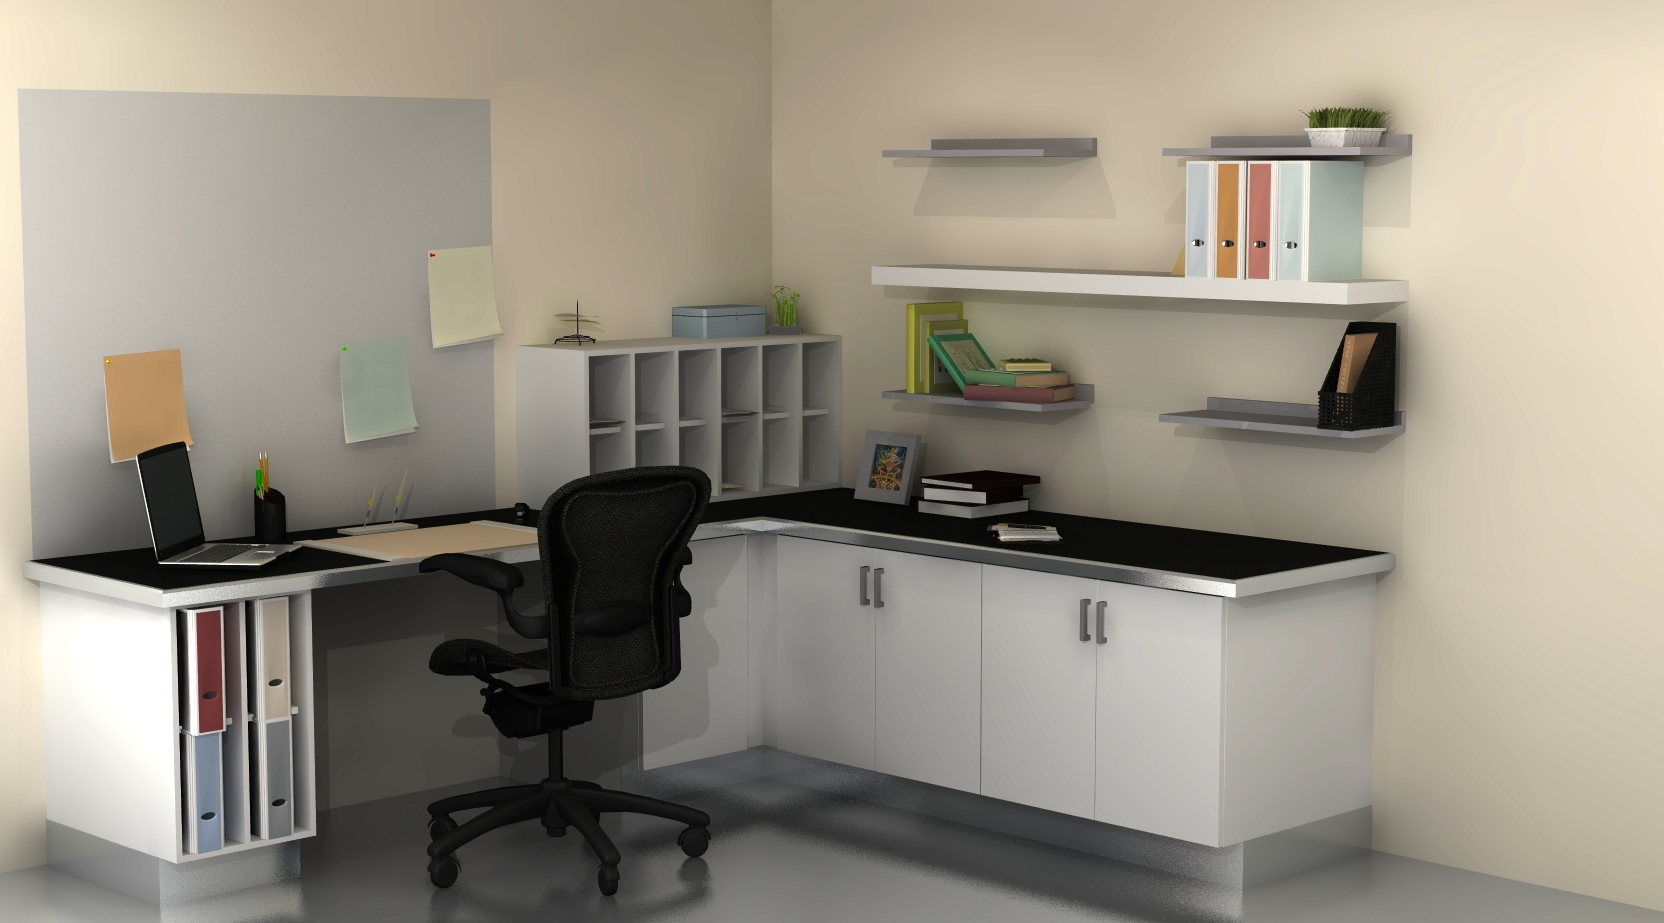 useful spaces a home office with ikea cabinets - Ikea Home Office